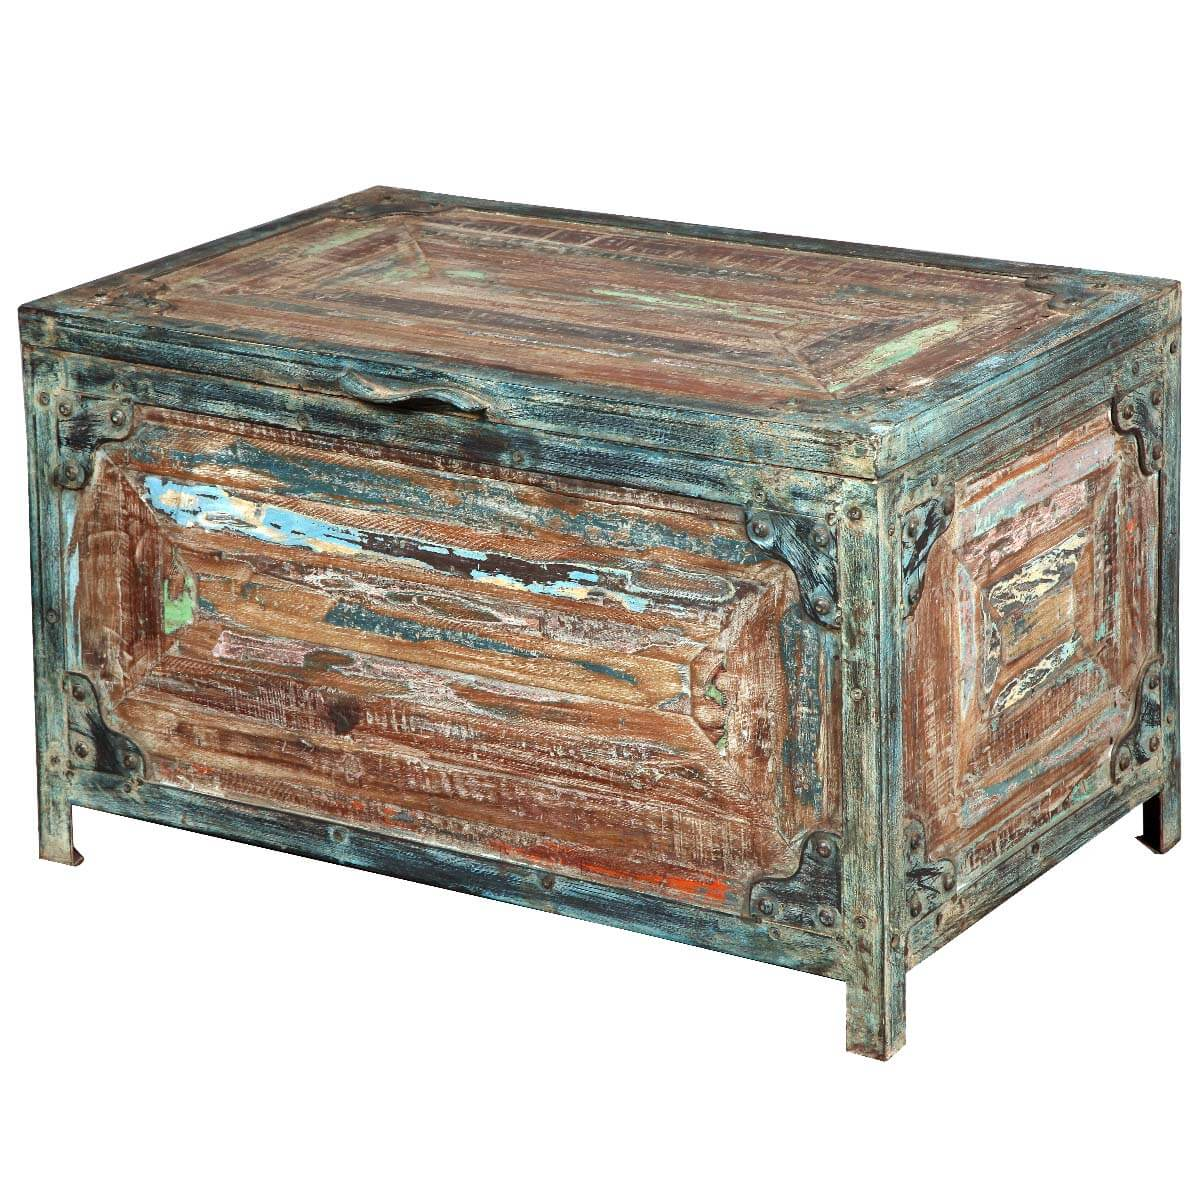 Rustic Reclaimed Wood Nottingham Small Coffee Table Storage Chest